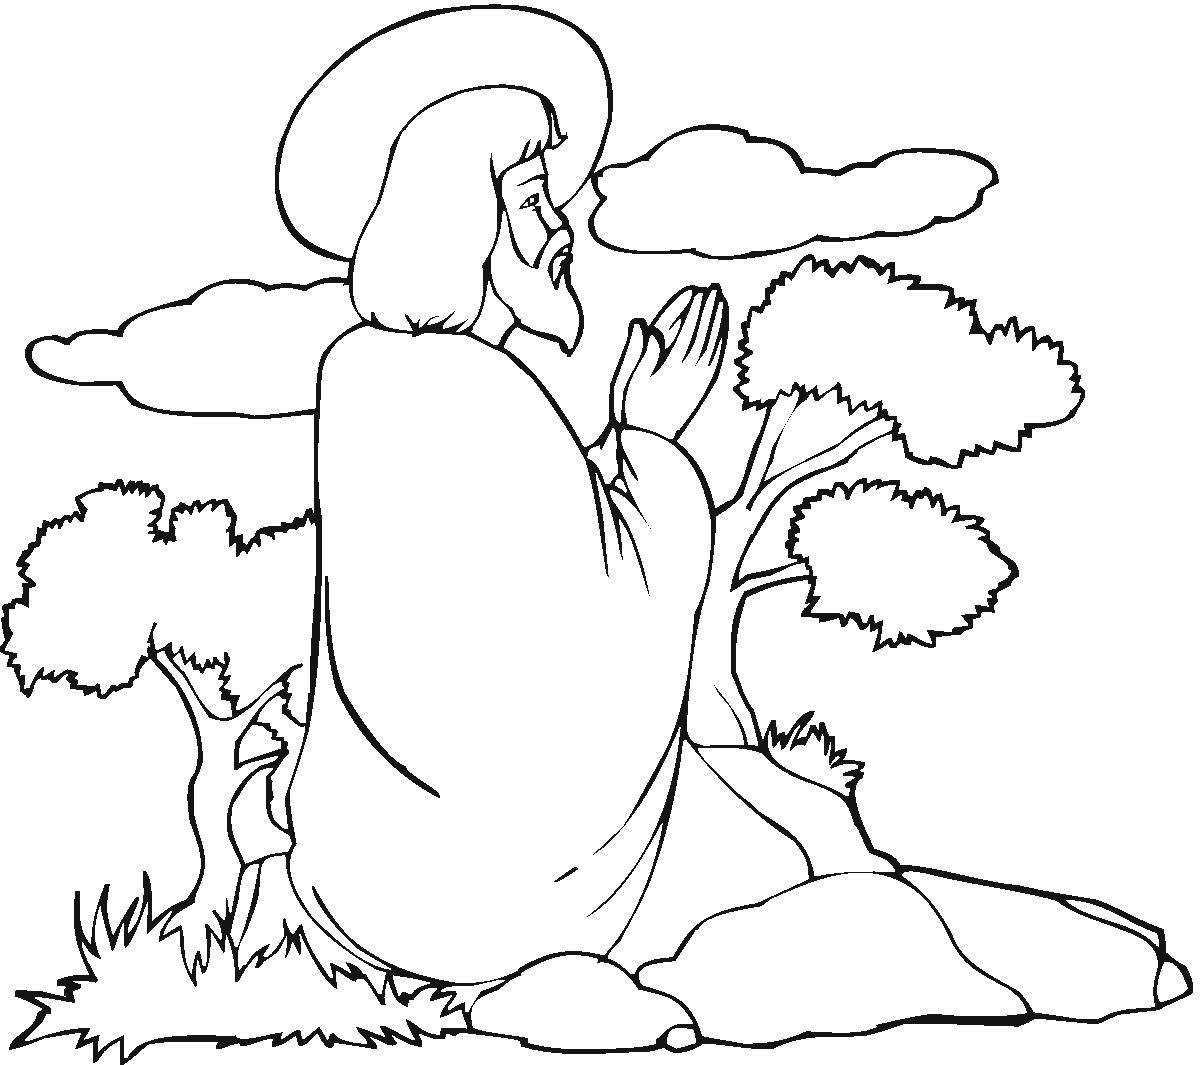 Coloring Pages Jesus And The Children Coloring Pages free printable jesus coloring pages for kids jesus